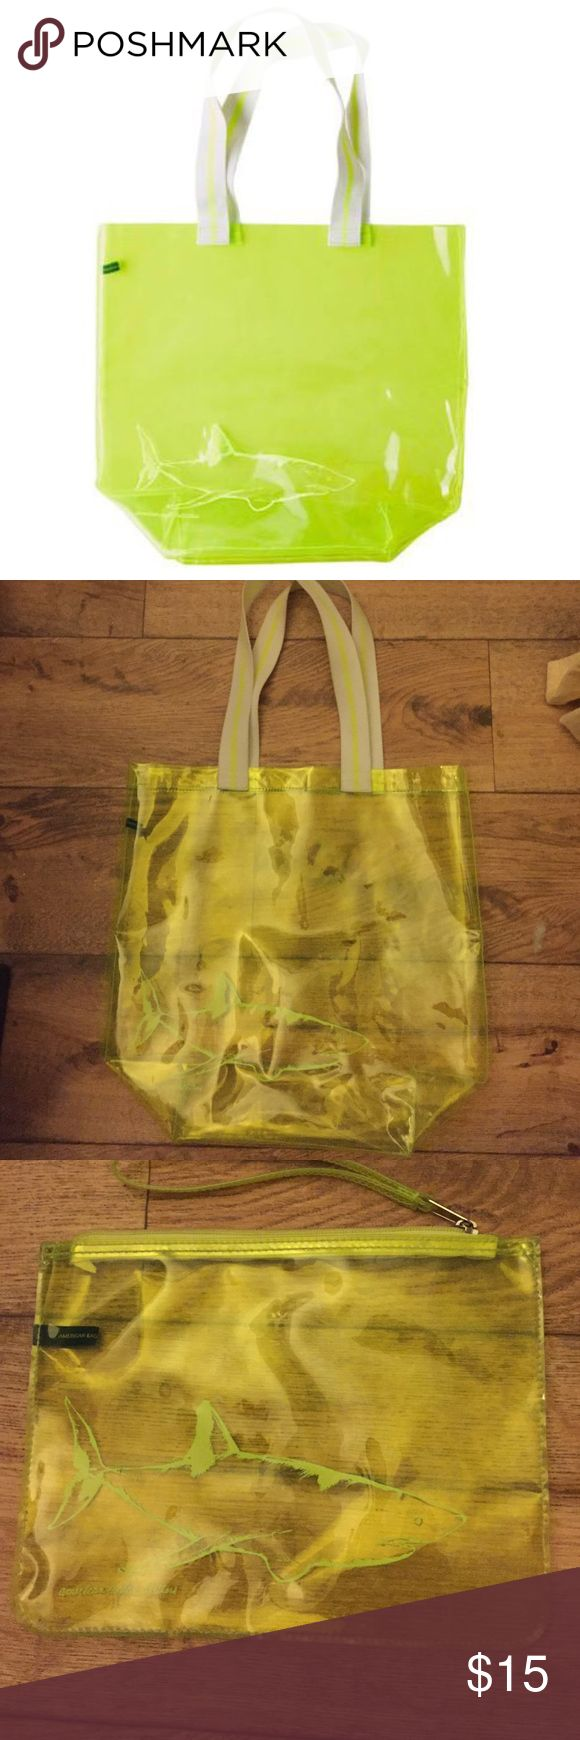 American Eagle Beach Tote Set Neon yellow tote and clutch, both with an image of a shark. Perfect for the beach or campus! Used a few times; straps are slightly dirty and there are faint marks, but they have been wiped down. Tote originally retailed for $19.95, clutch for $9.50. I will only sell these as a set. PRICE IS FIRM🚫NO TRADES American Eagle Outfitters Bags Totes